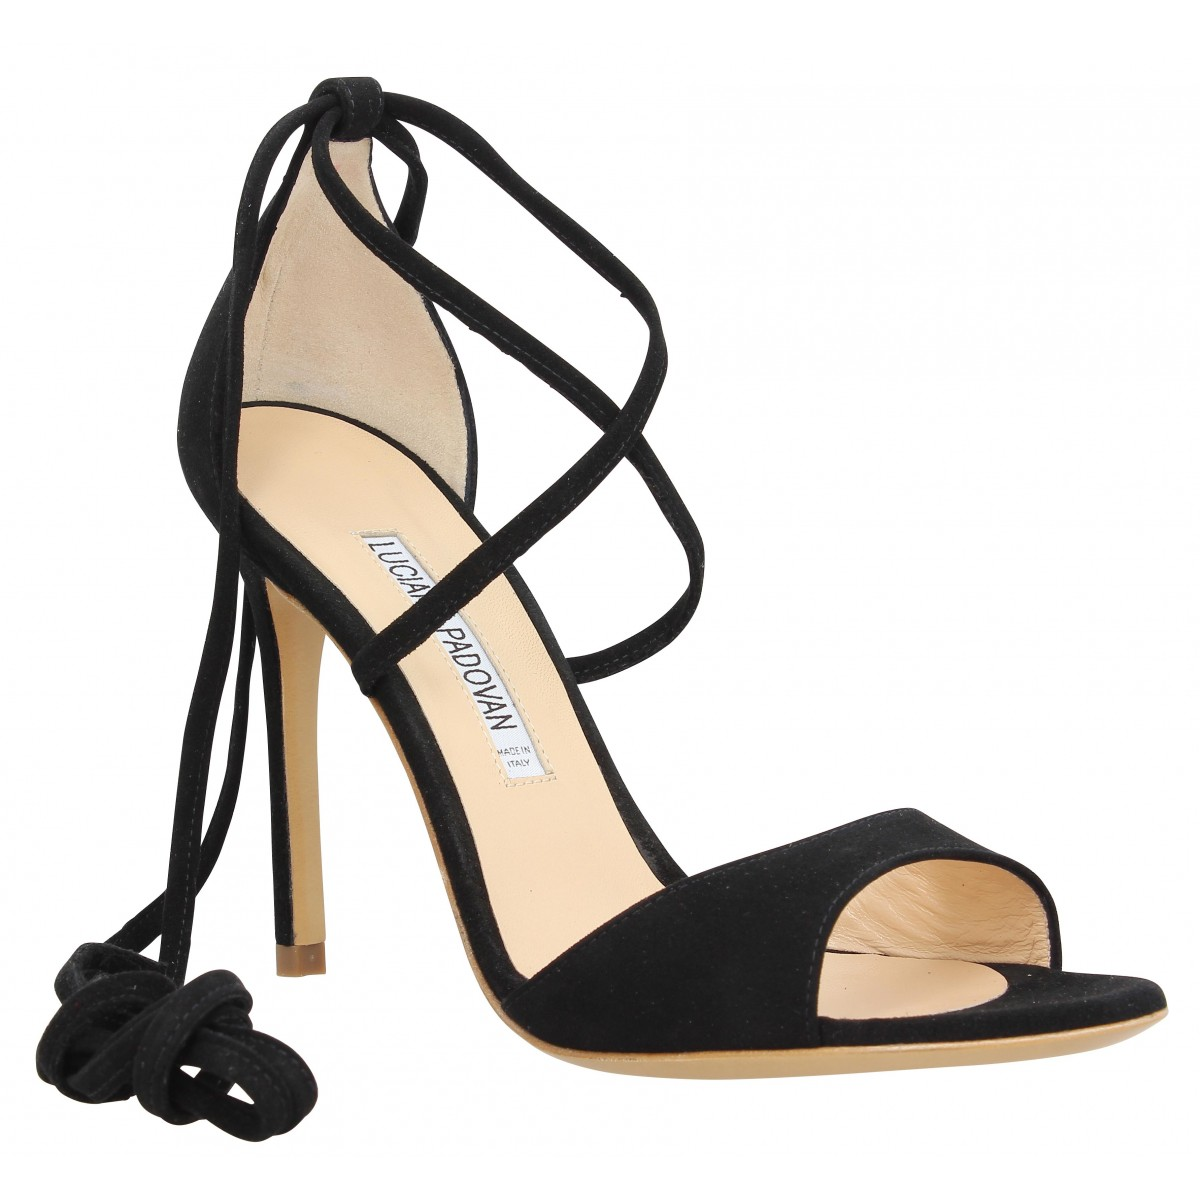 Sandales talons LUCIANO PADOVAN Mirand velours Femme Noir